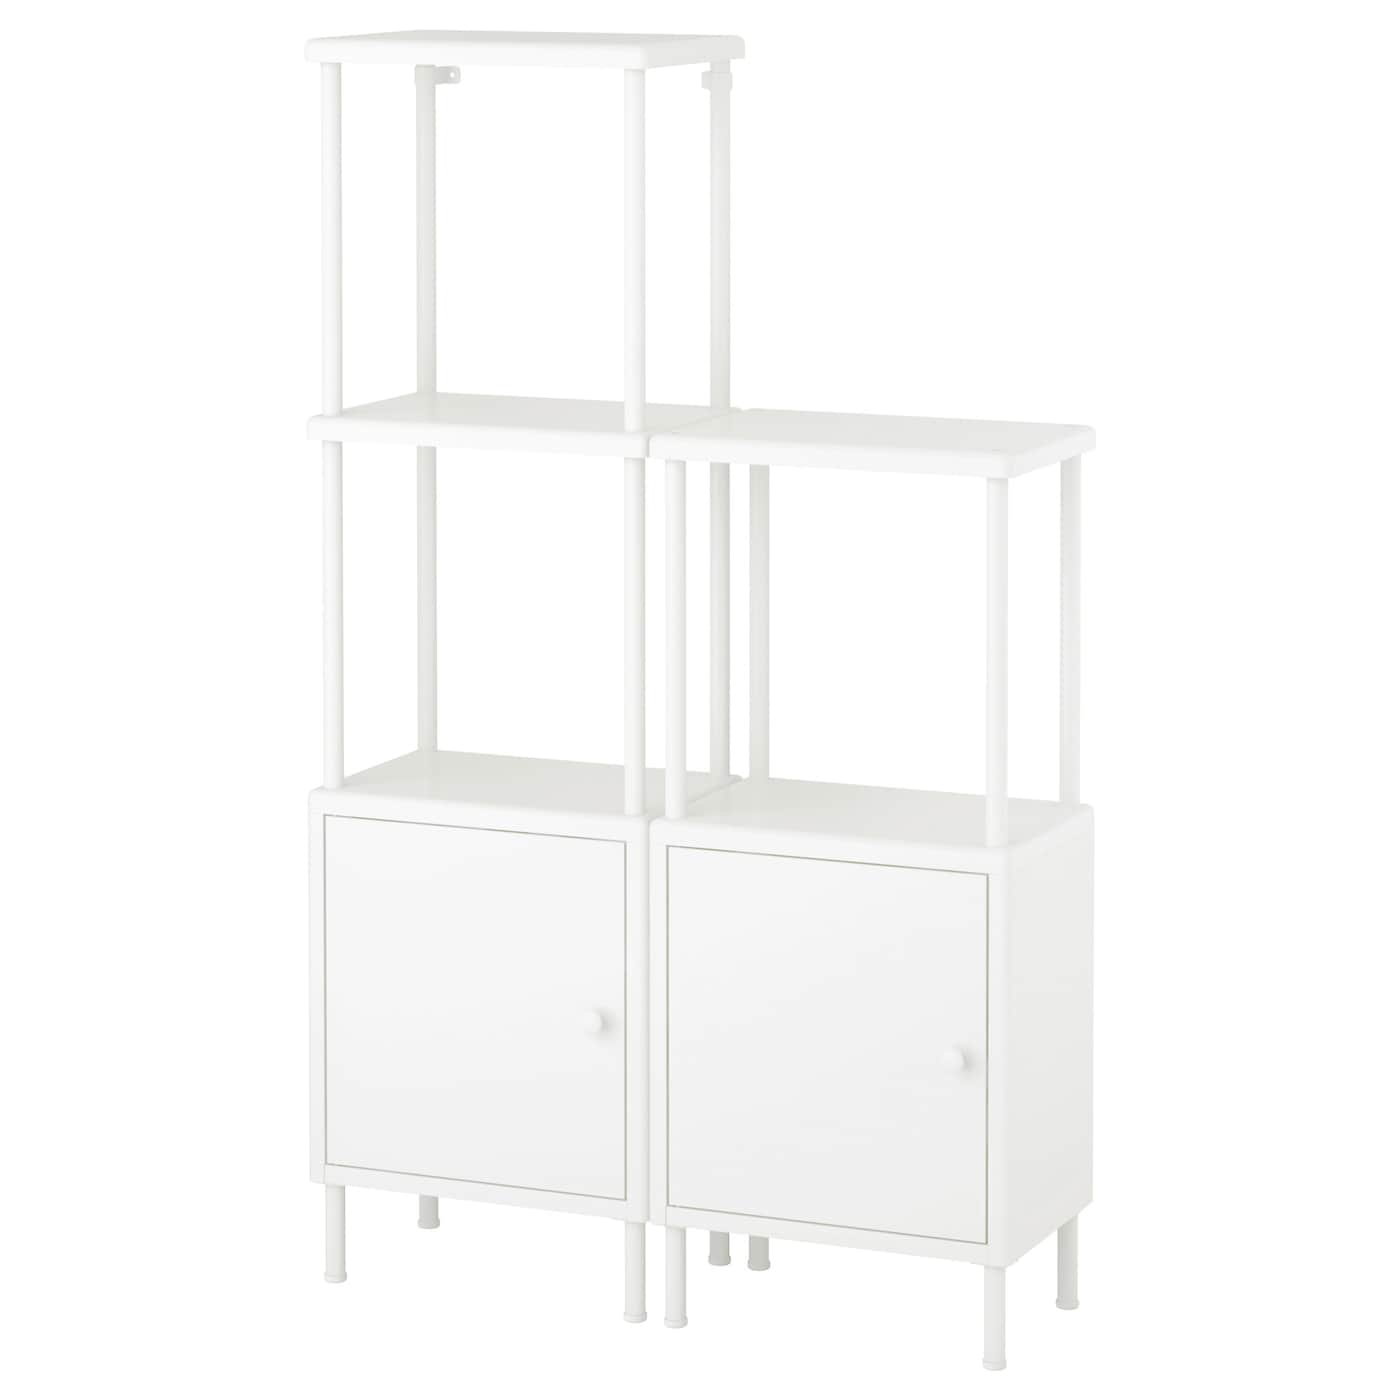 small en unit shelves shelving with a bathroom white cabinet dynan perfect ideas storage furniture ikea in gb products